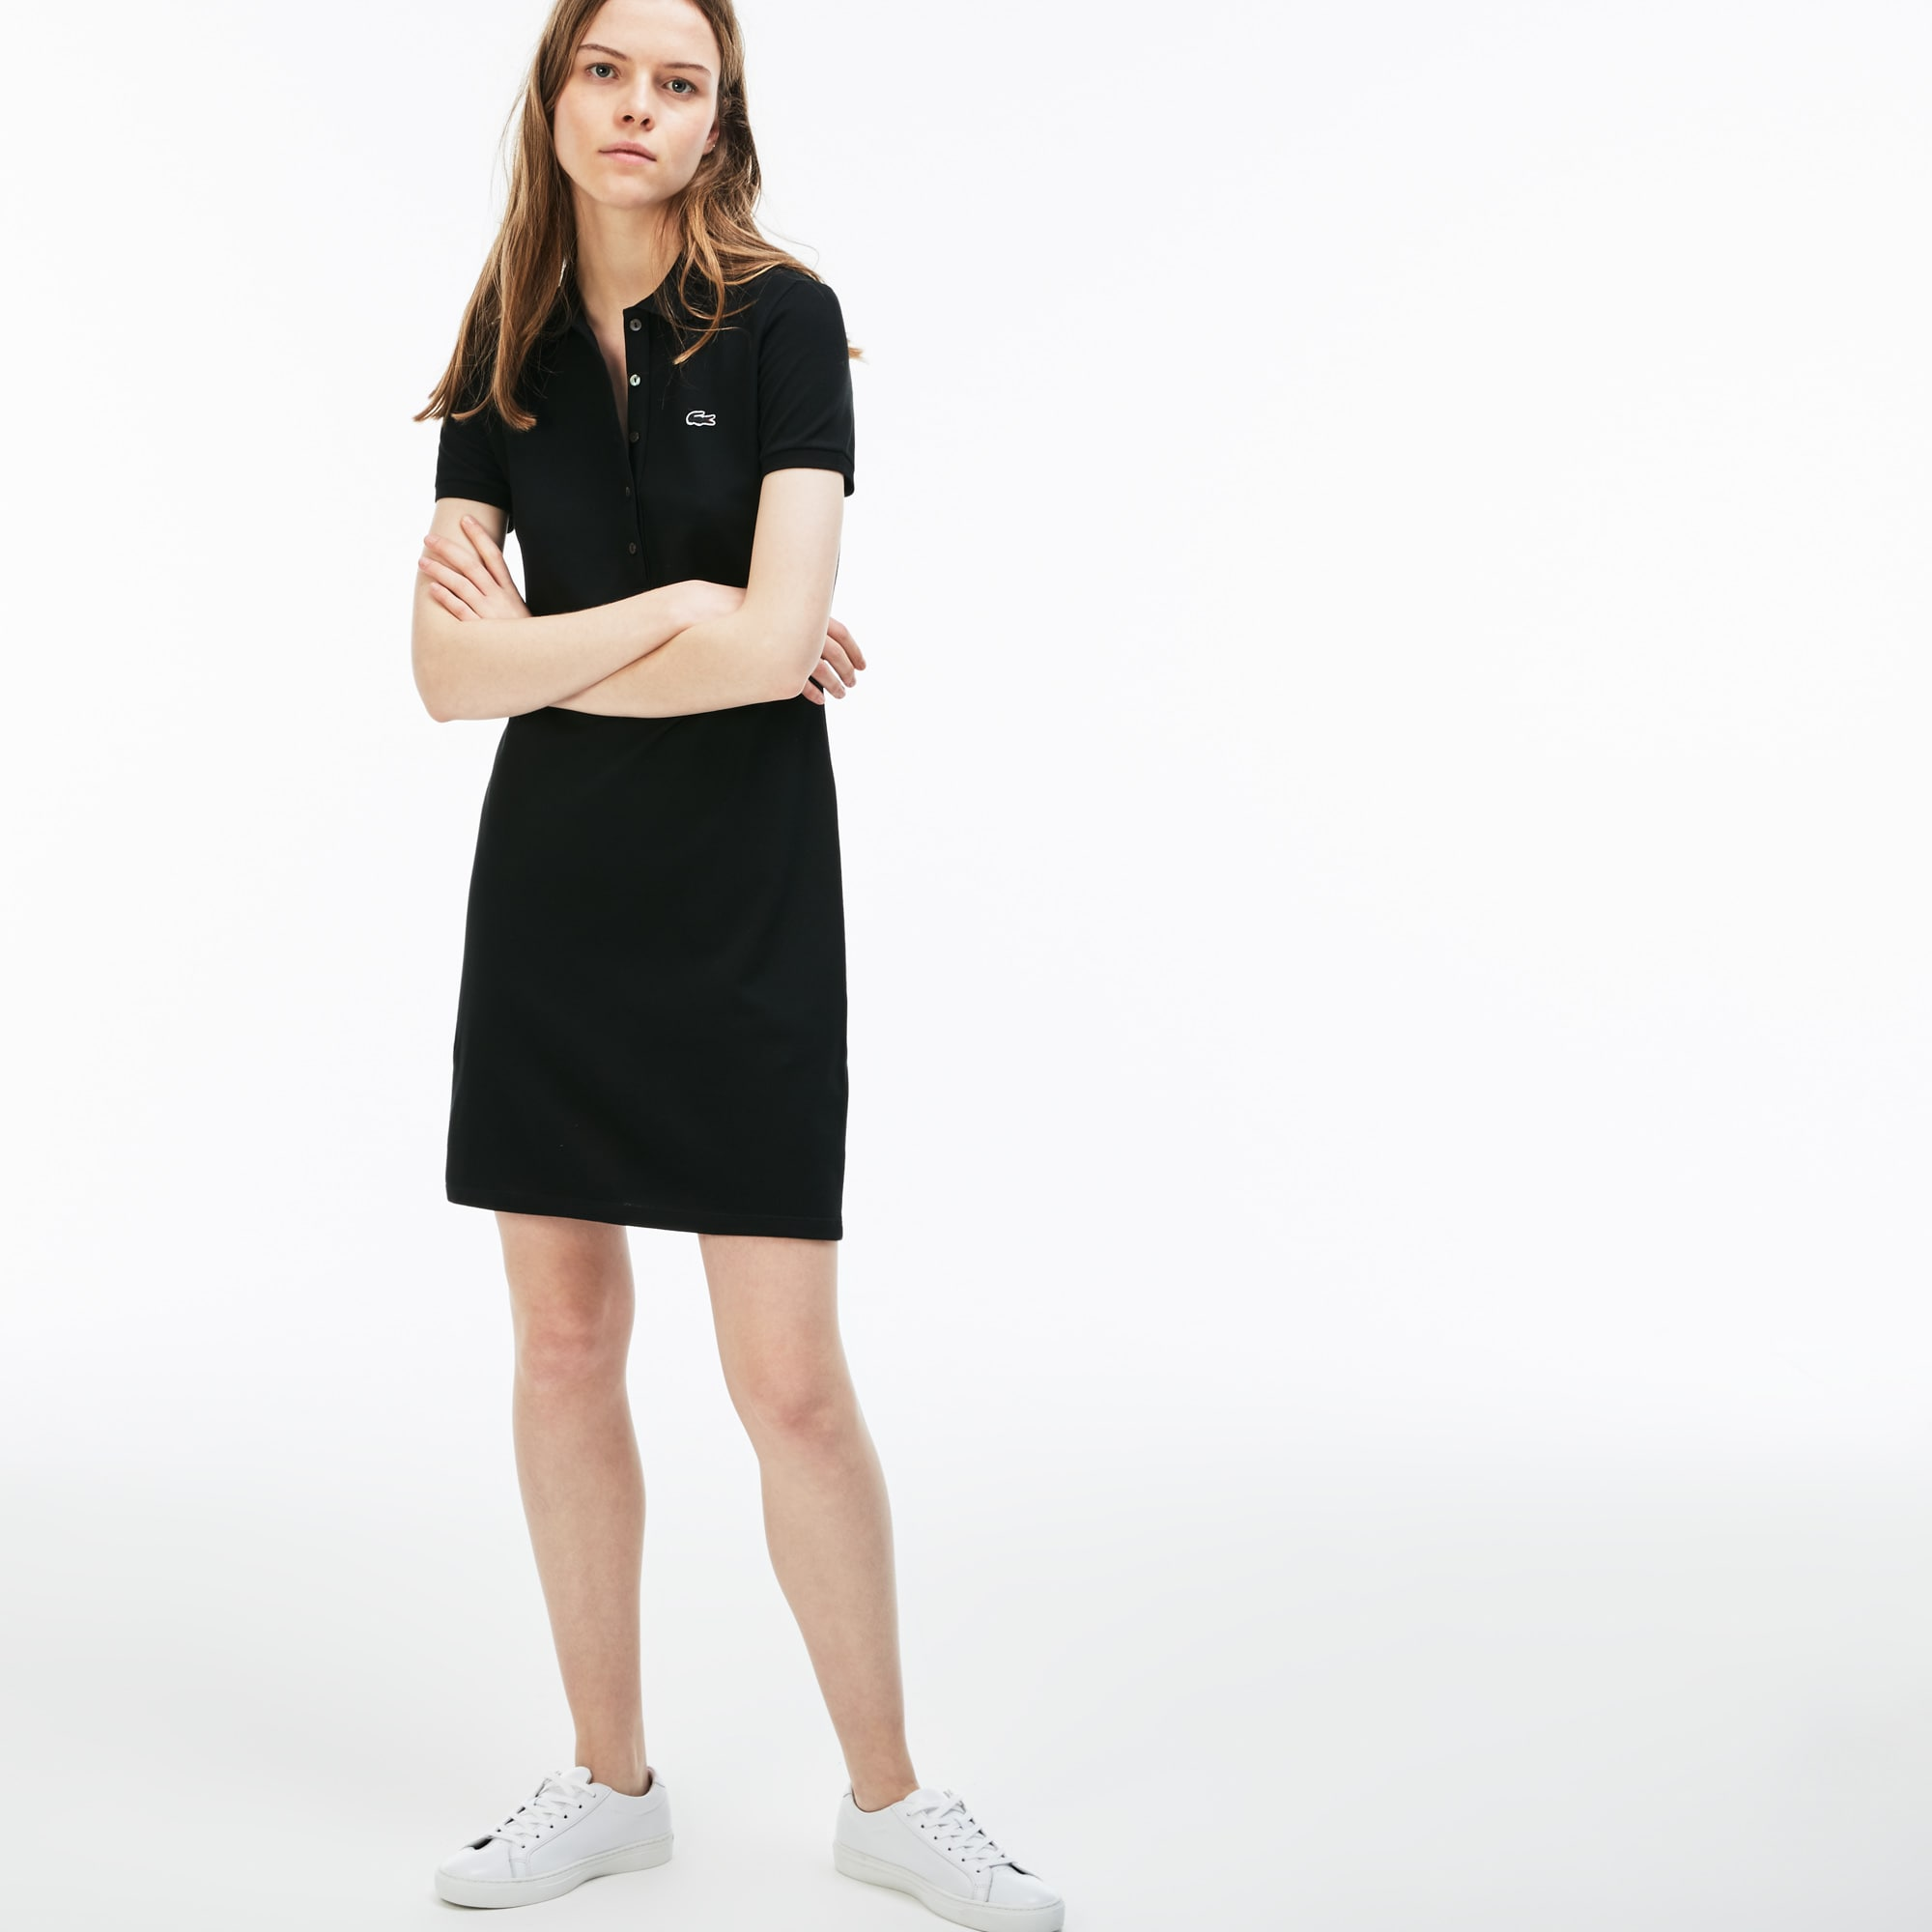 f4540439c9 Dresses and Skirts | Women's Clothing | LACOSTE